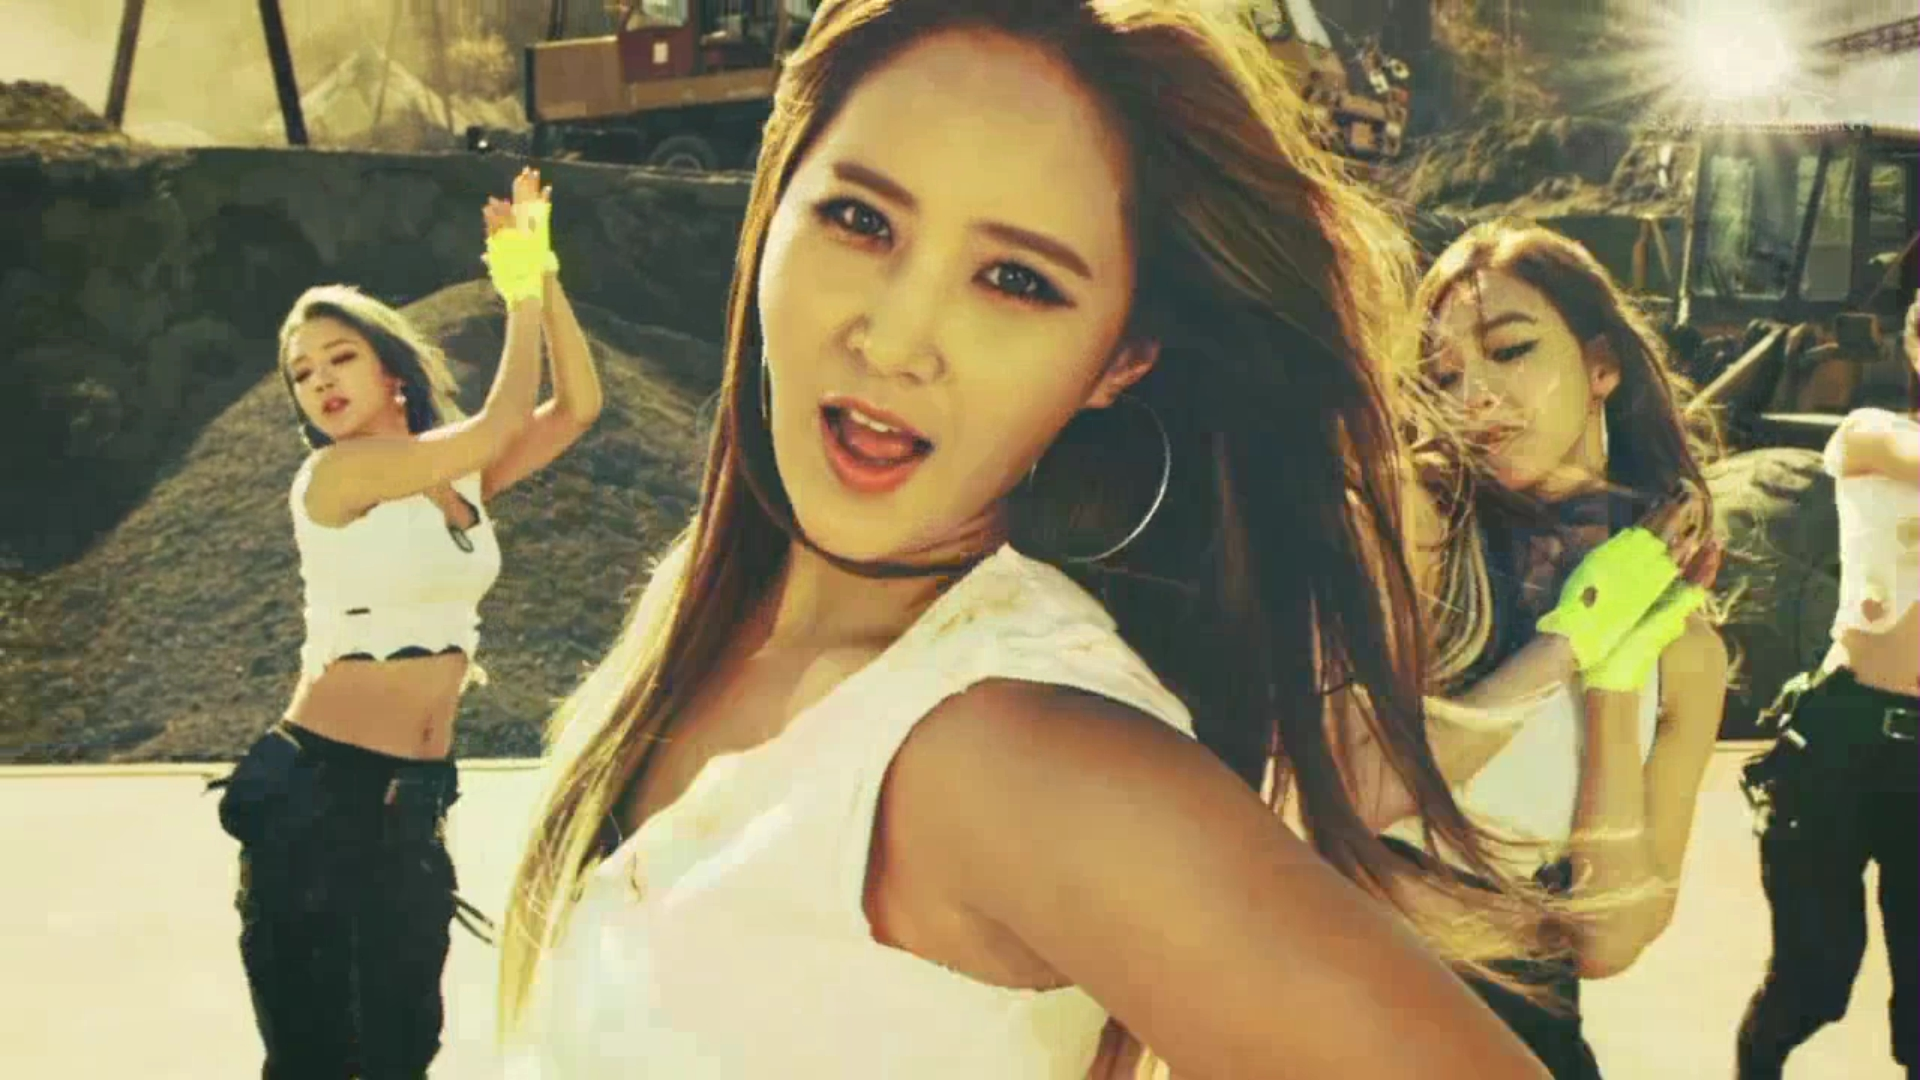 Snsd Catch Me If You Can Screencap Girls Generation Snsd Photo